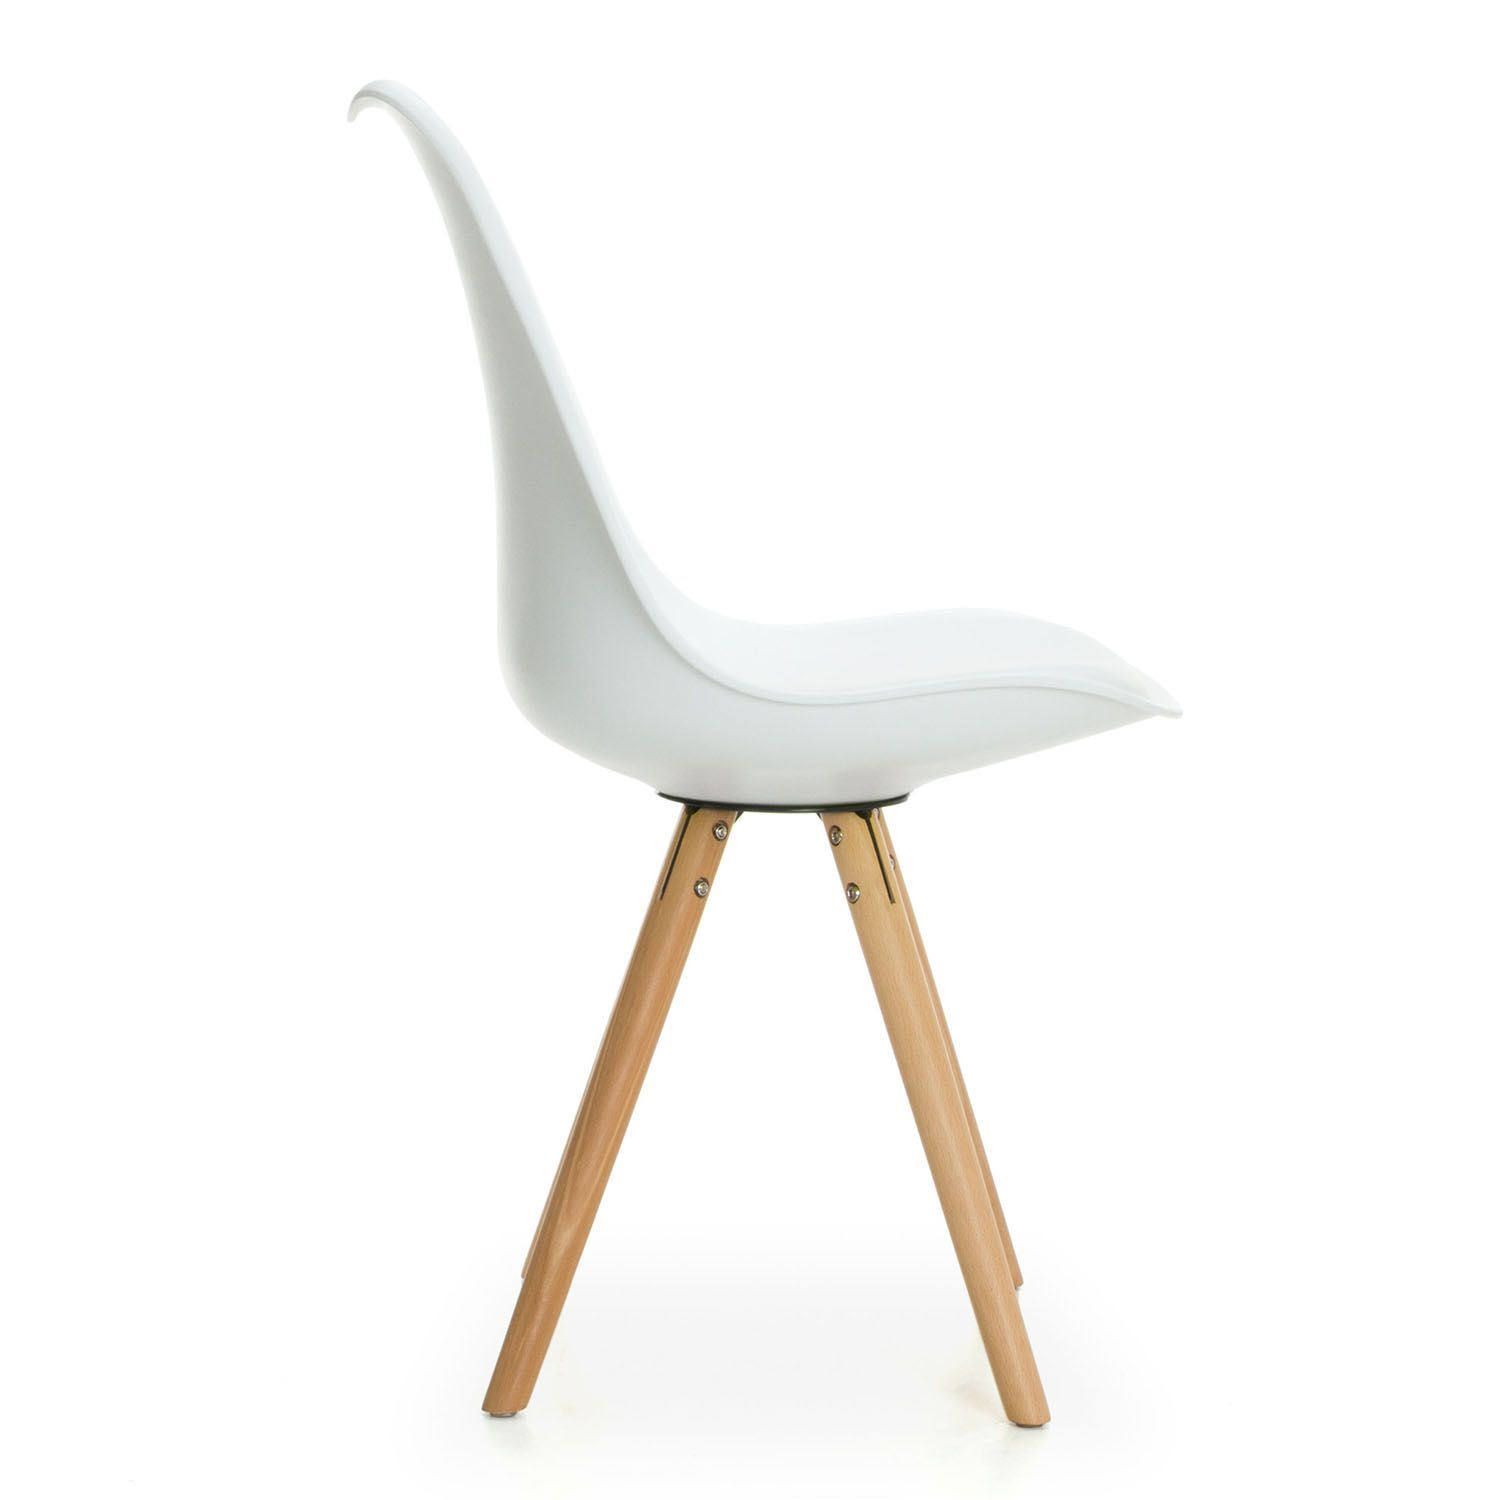 Set of 2 Tulip Star Dining chair with Wood Legs and Cushion